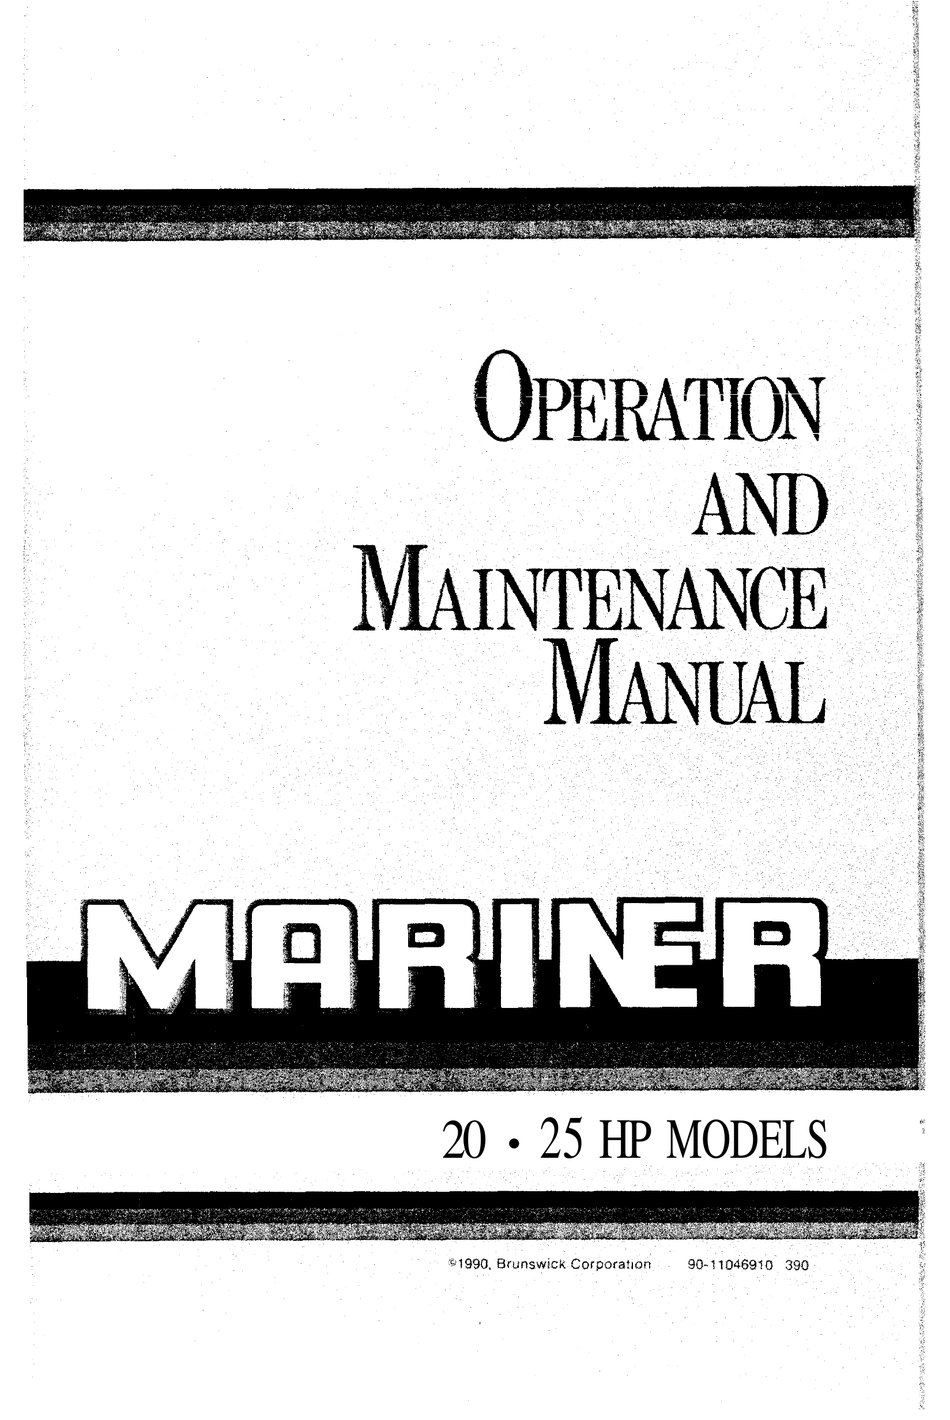 MARINER 20 HP OPERATION AND MAINTENANCE MANUAL Pdf